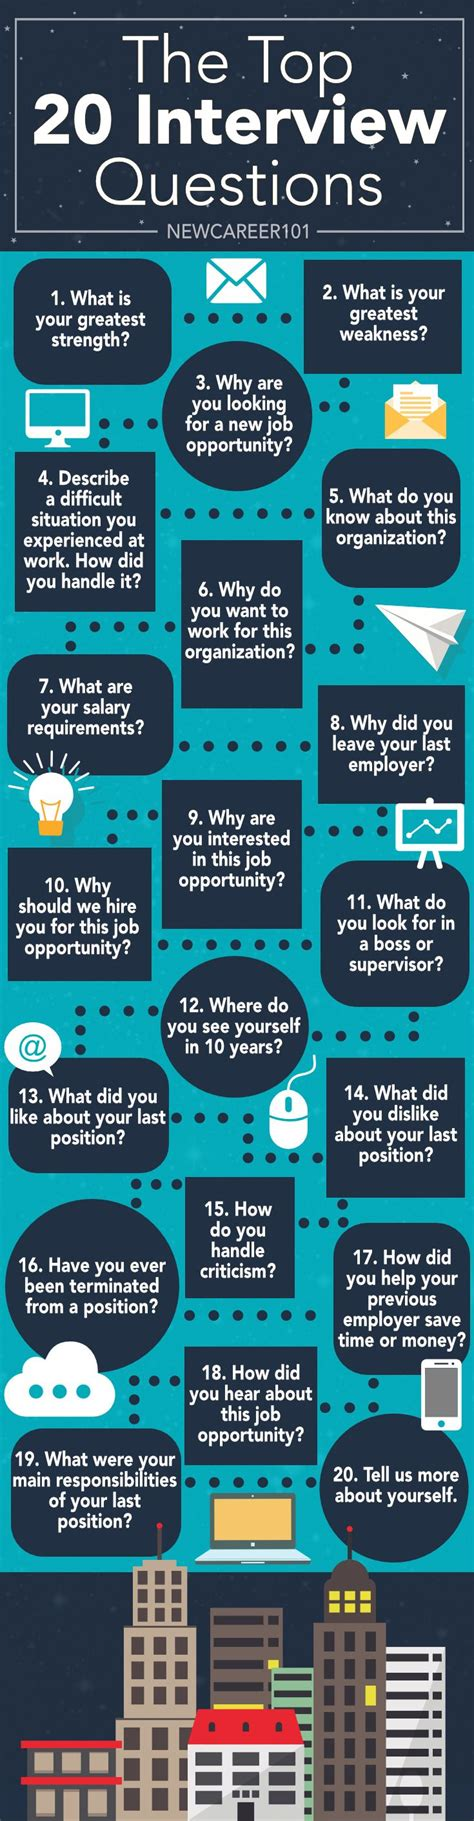 Resume : THE TOP 20 INTERVIEW QUESTIONS ...